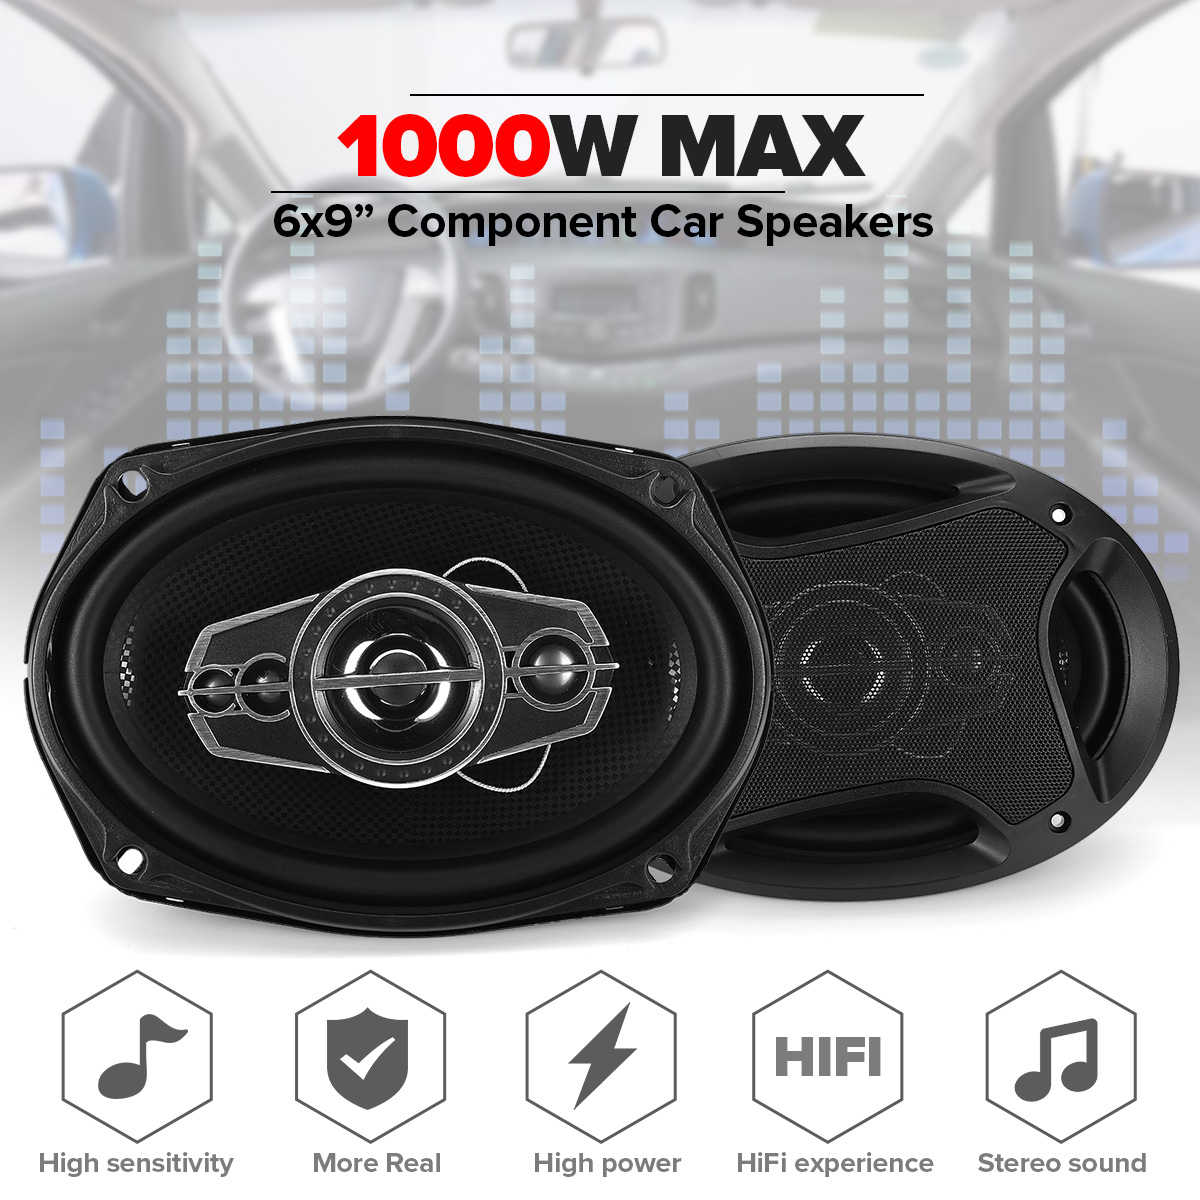 2pcs 800W 6x9 inch Car Speaker and Subwoofer HIFI Coaxial Speaker Car Bass Tweeter Audio Loudspeaker Stereo for Universal Cars|Coaxial speakers| |  - title=